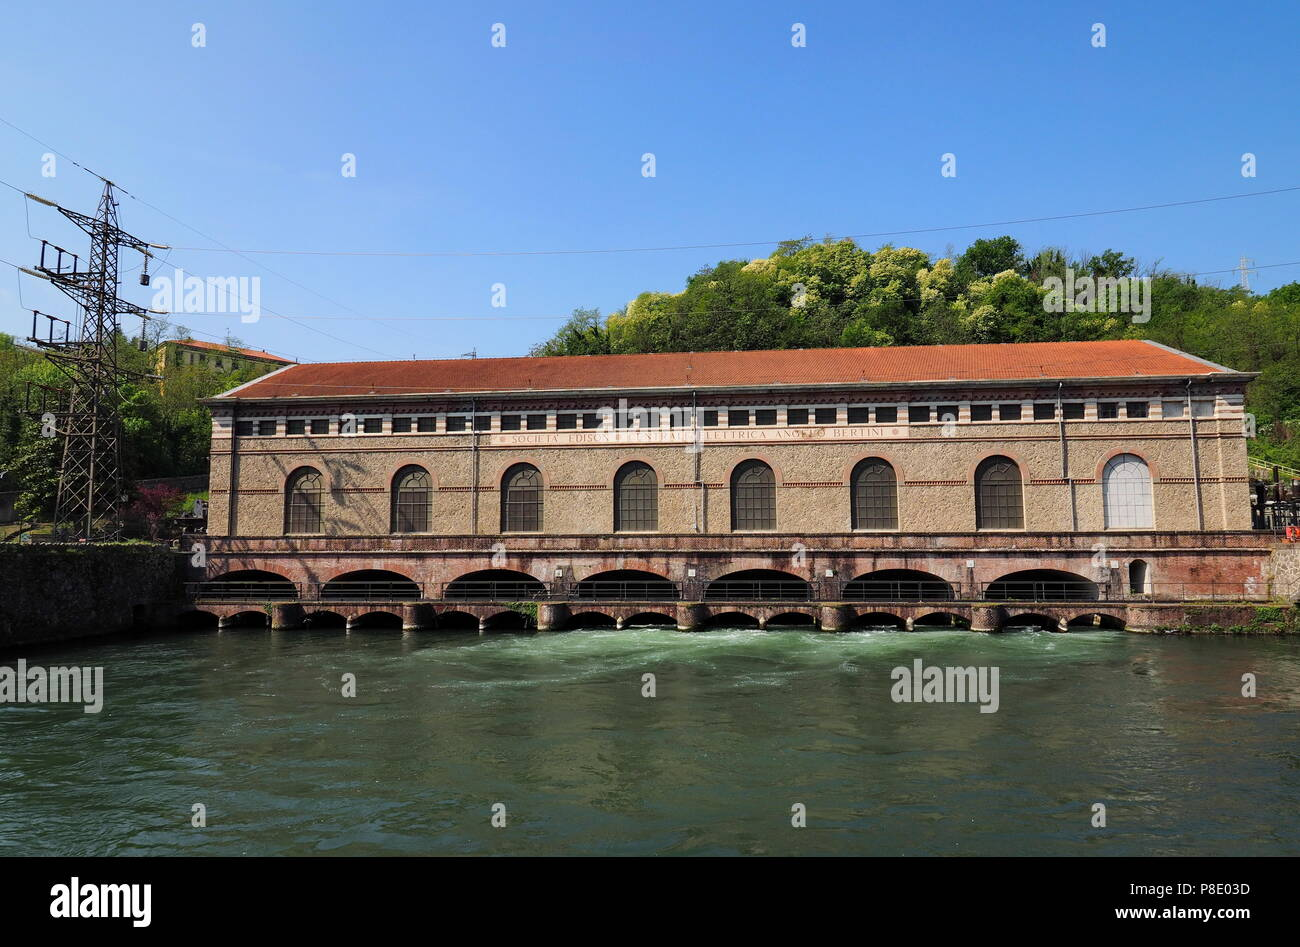 """The old and historic hydroelectric power plant """" Angelo Bertini"""", of 1906, on the river Adda Stock Photo"""